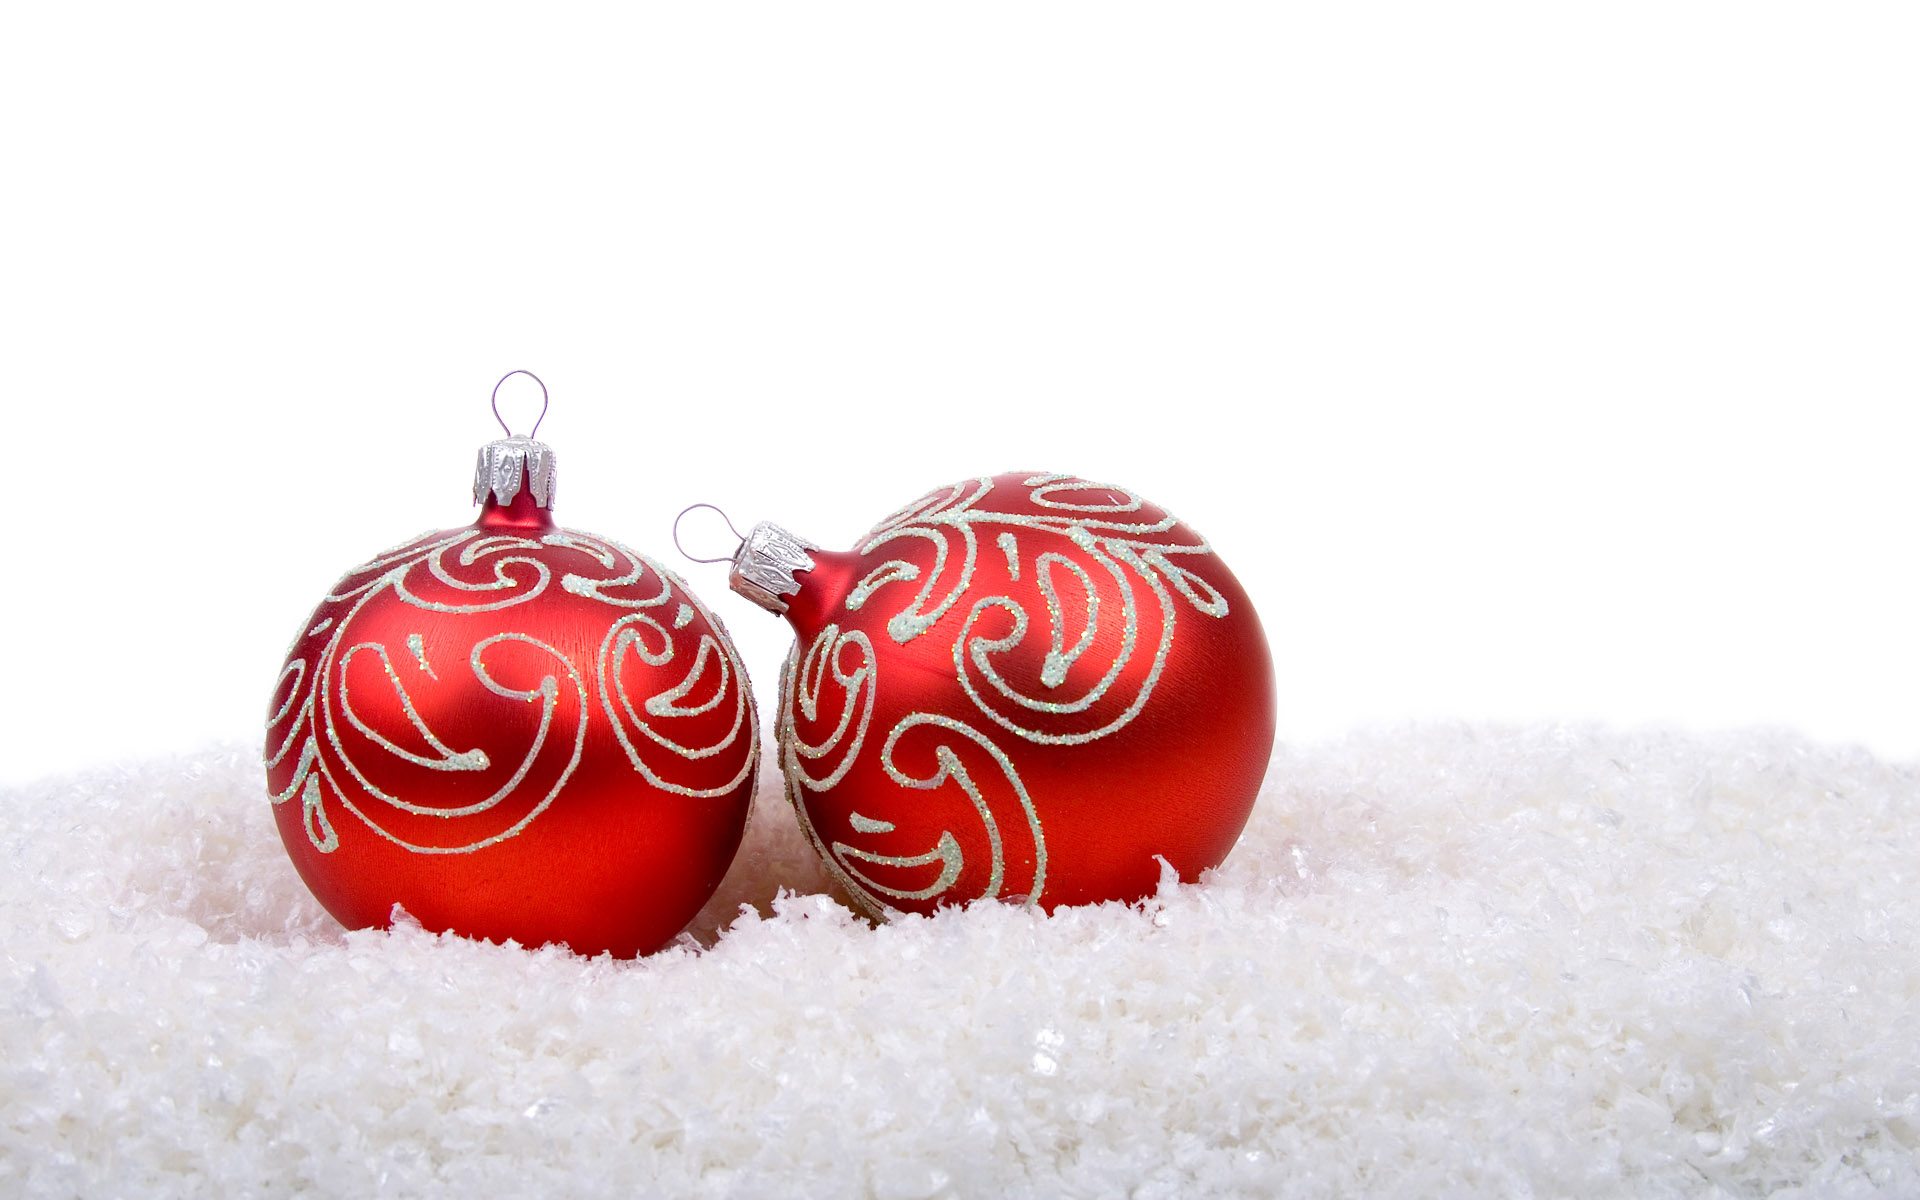 Christmas Ornaments Wallpaper 38760 1920x1200 Px